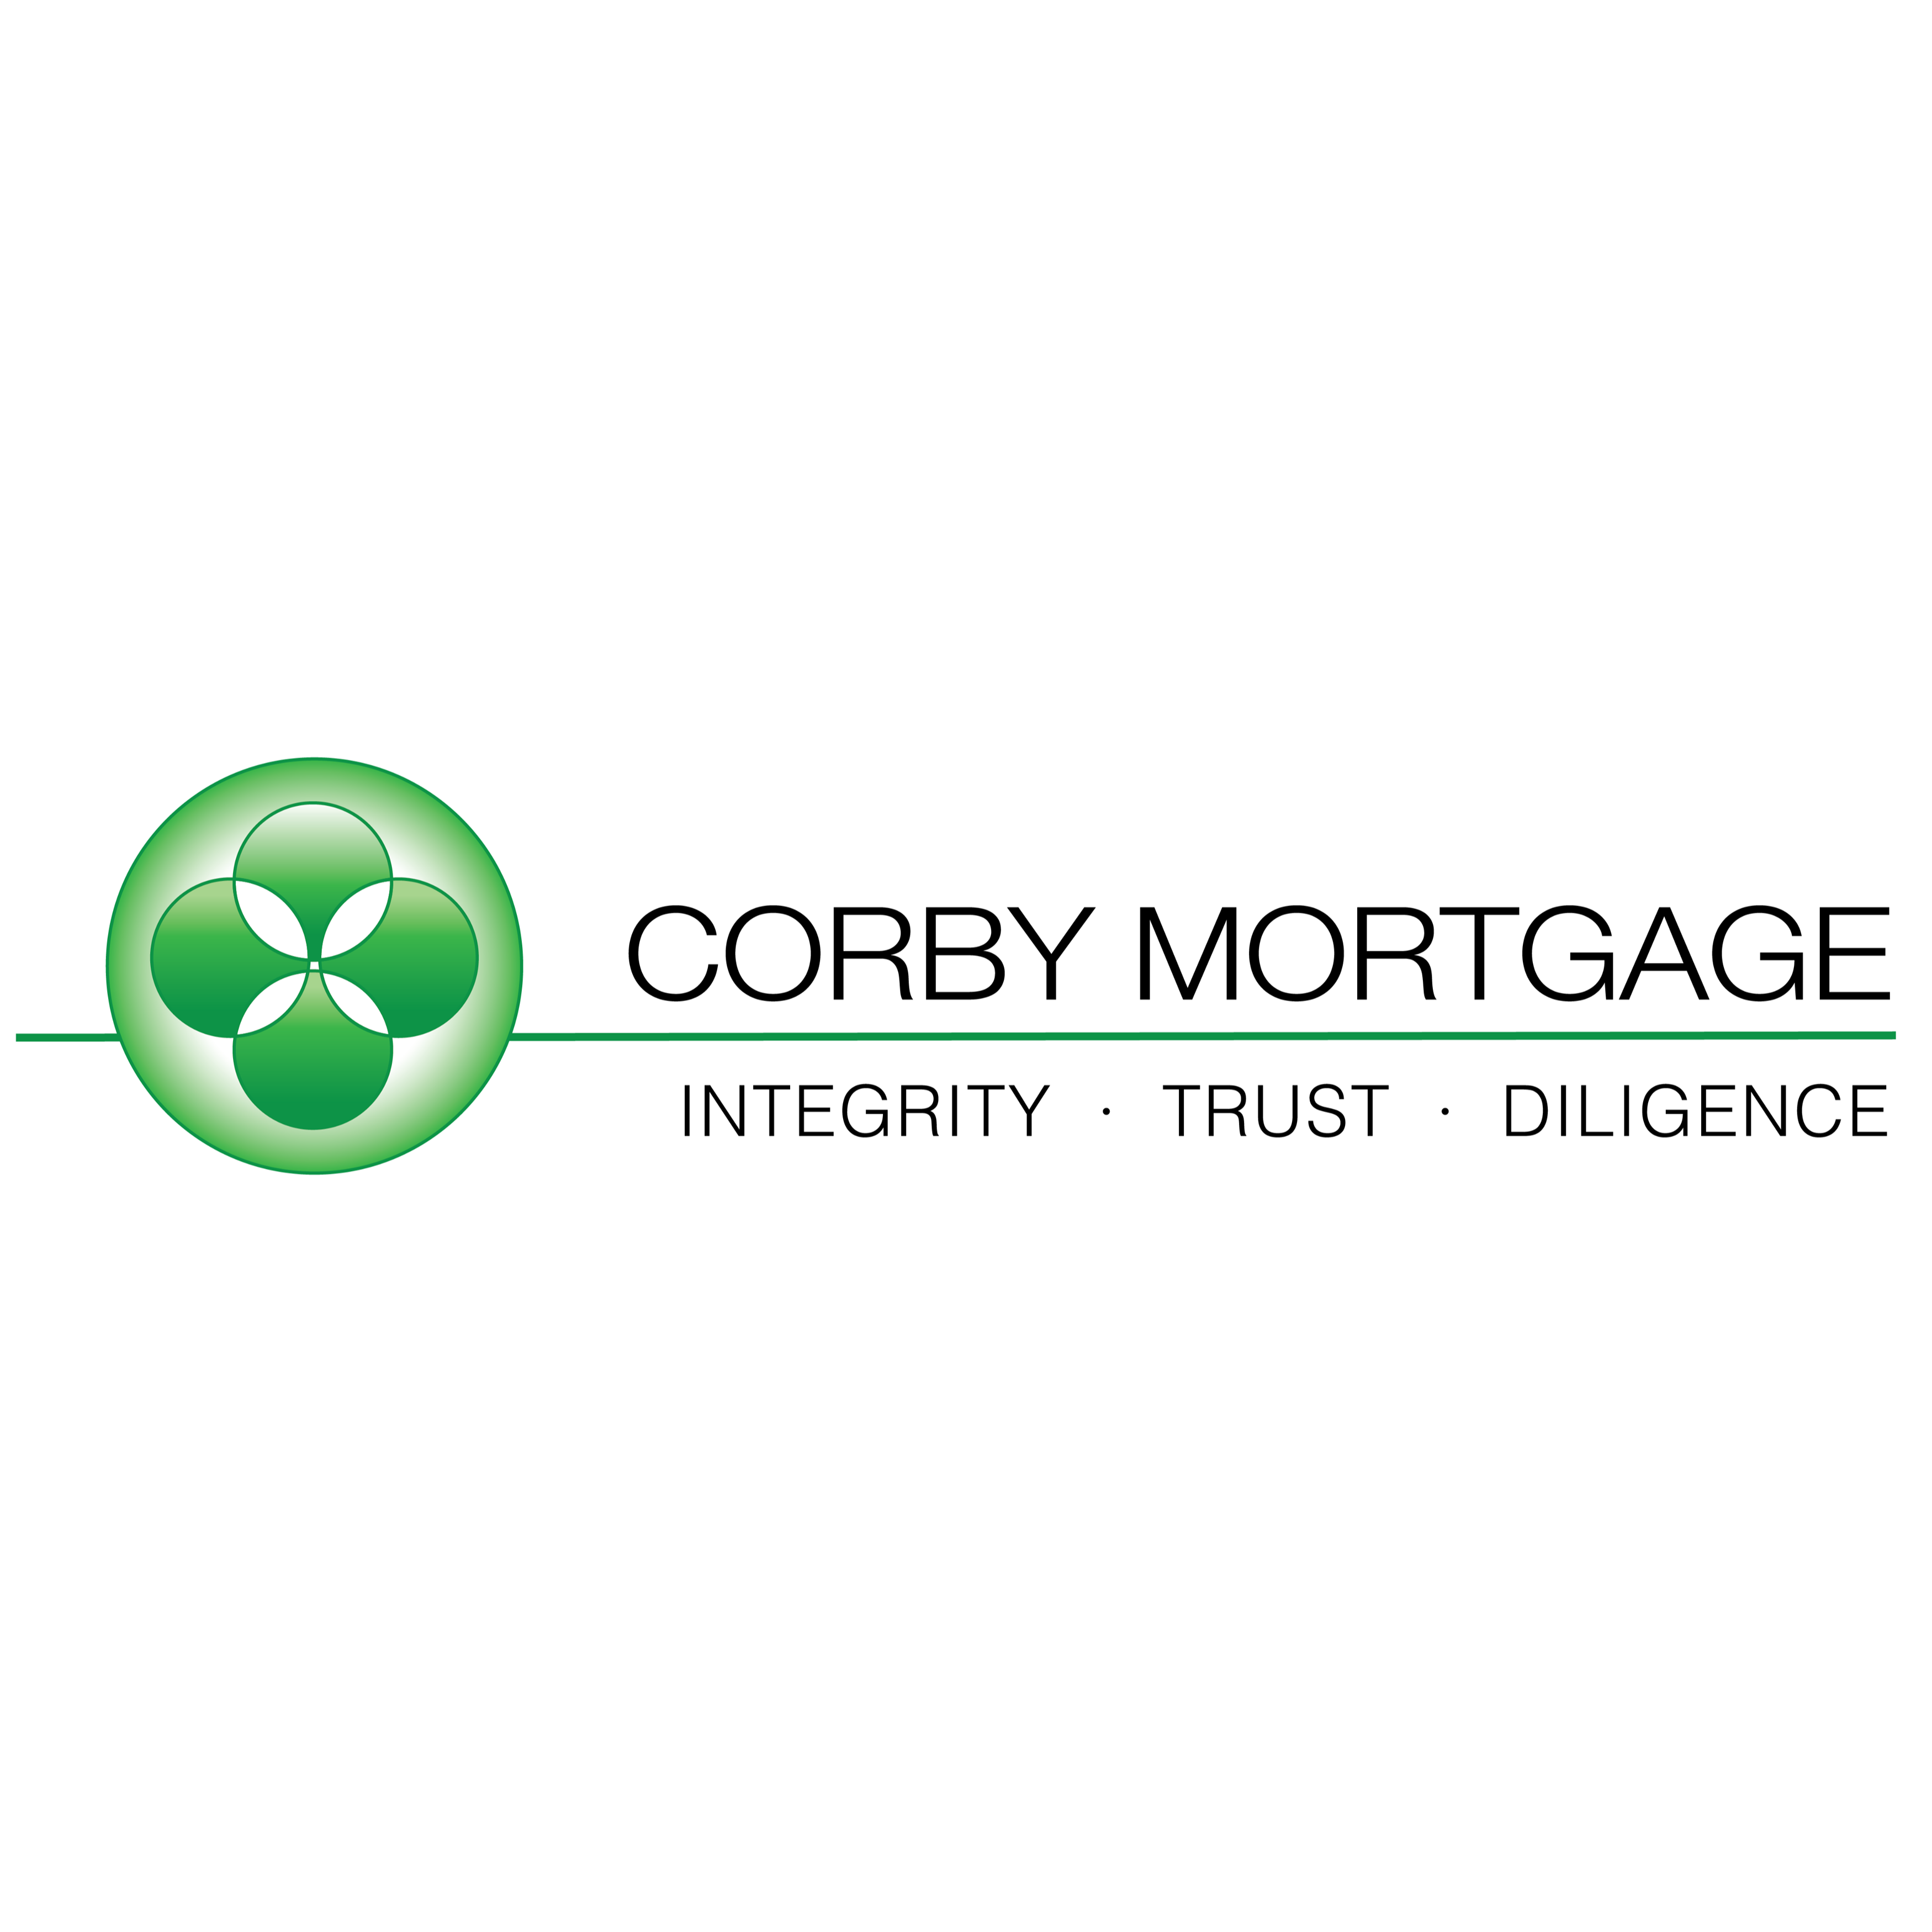 Corby Mortgage Services, Inc.